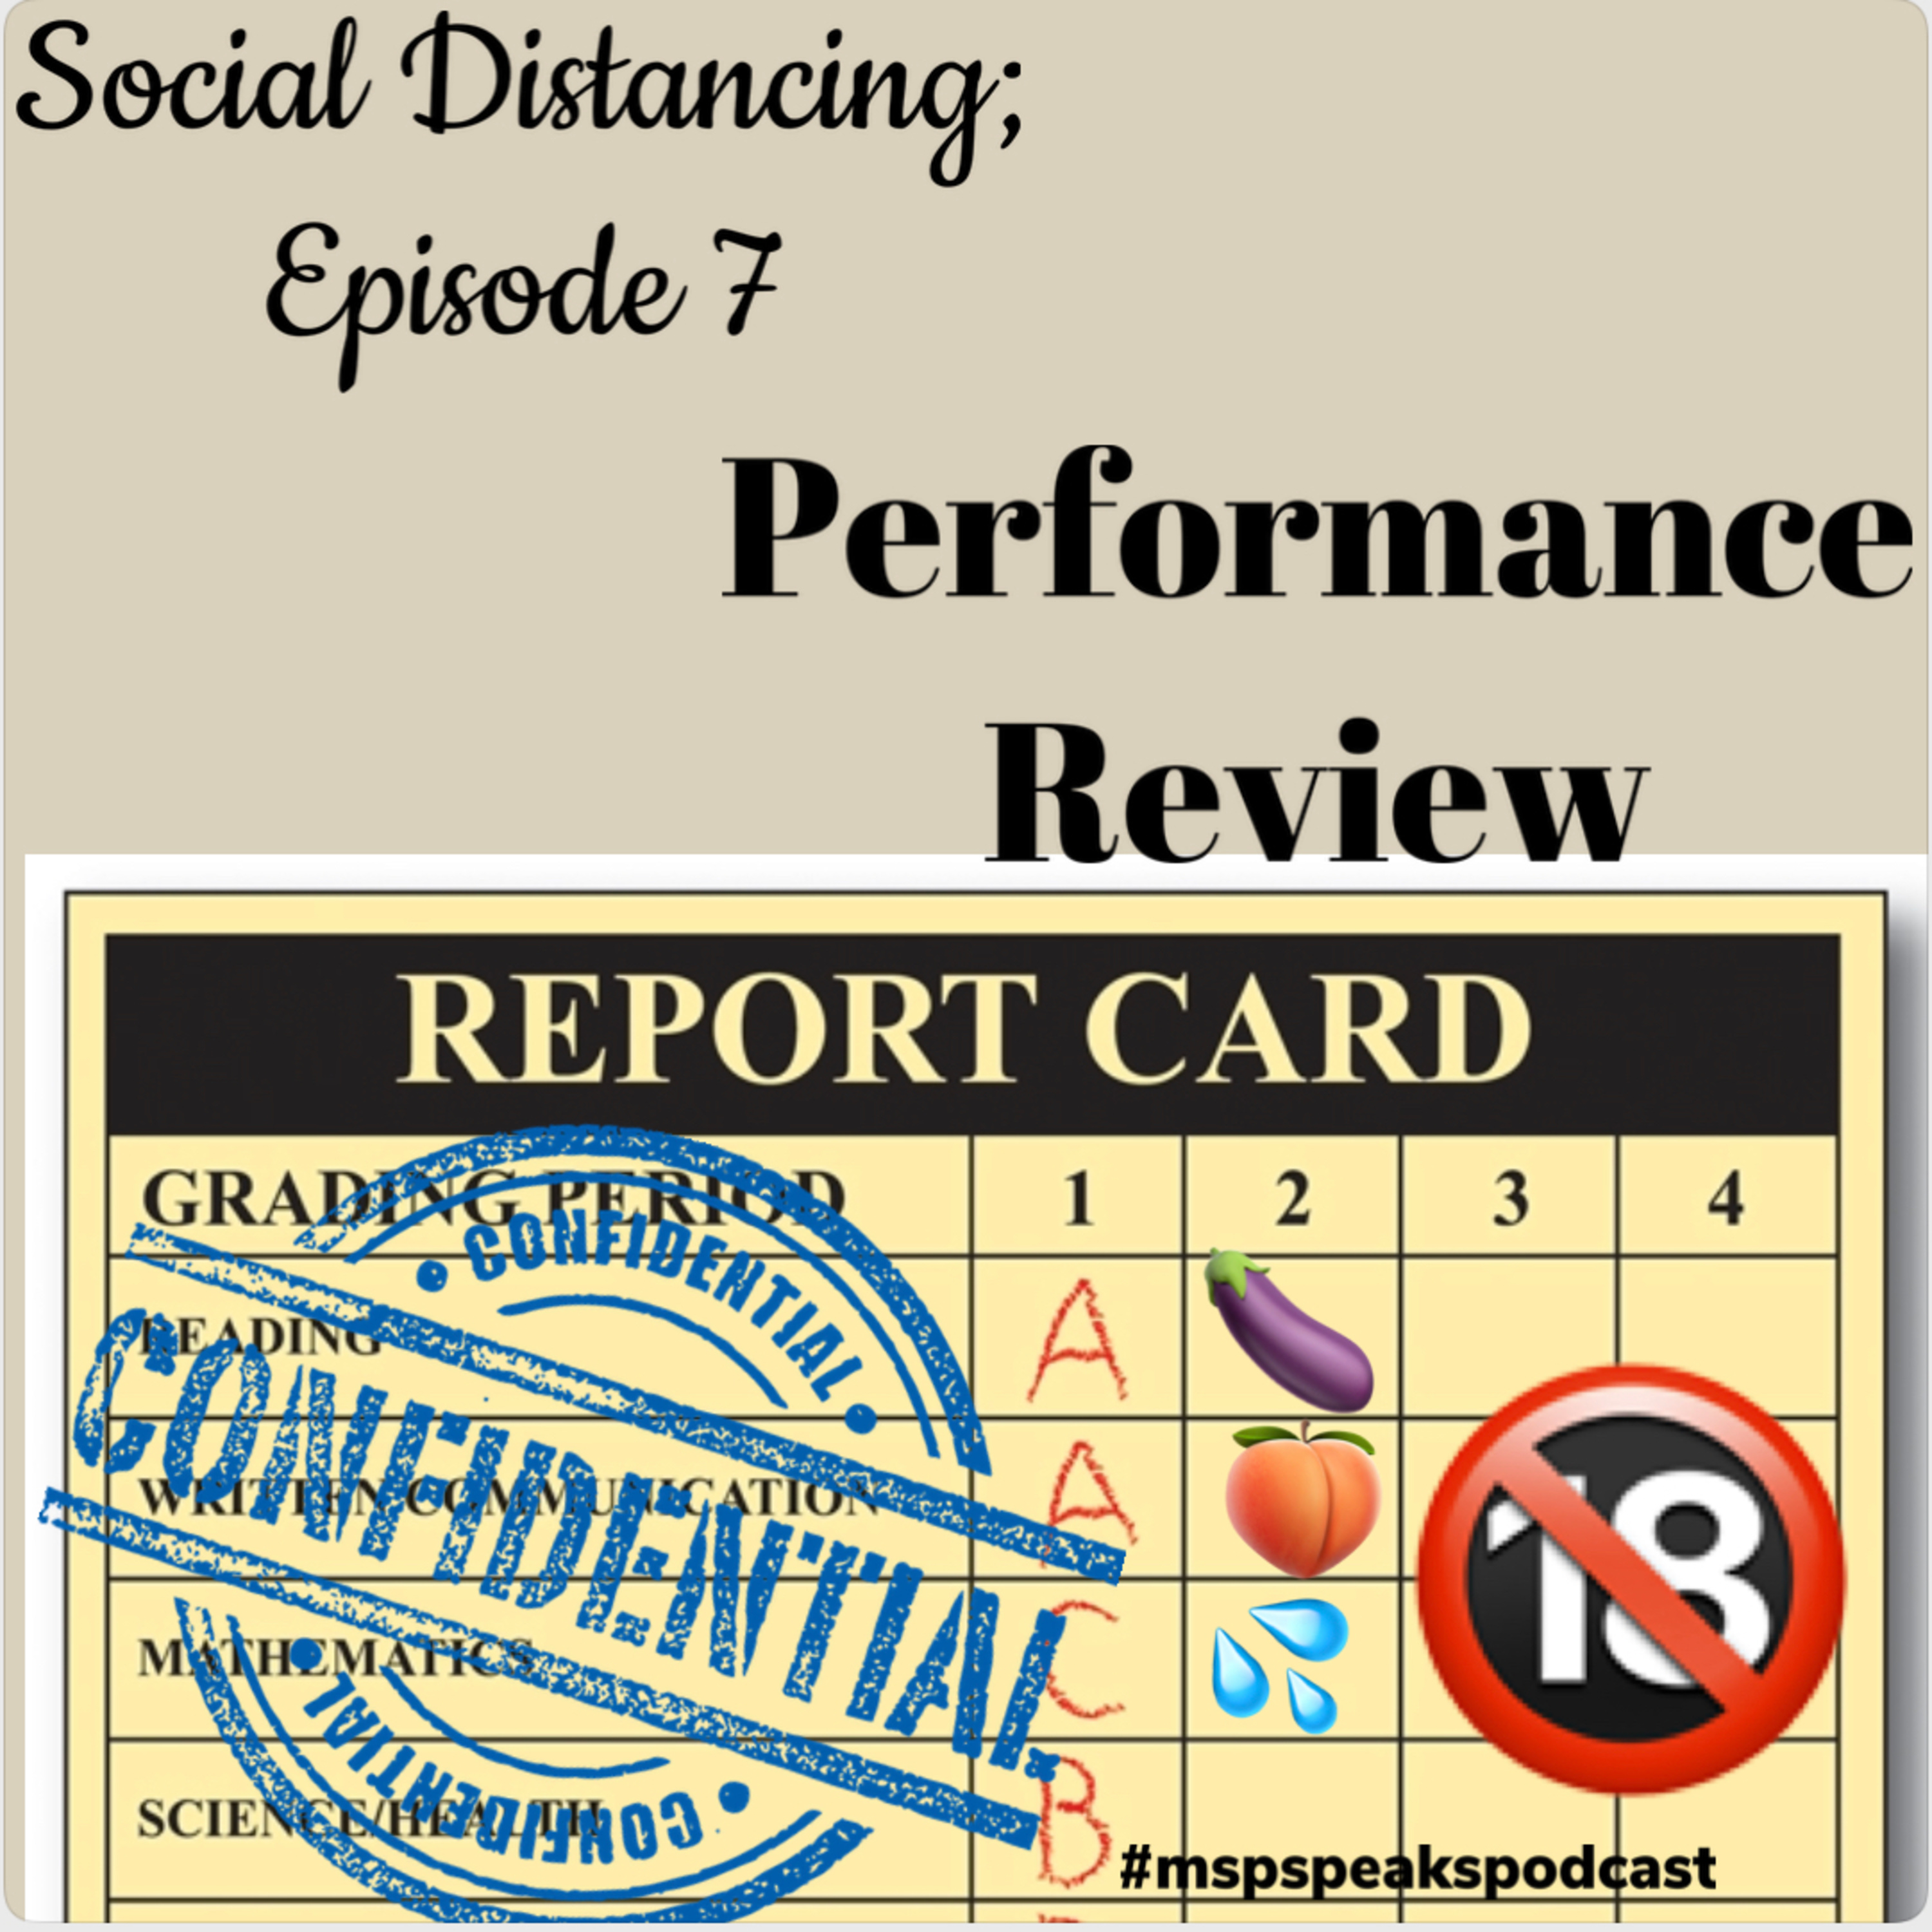 *Social Distancing; Episode 7 - Performance Review